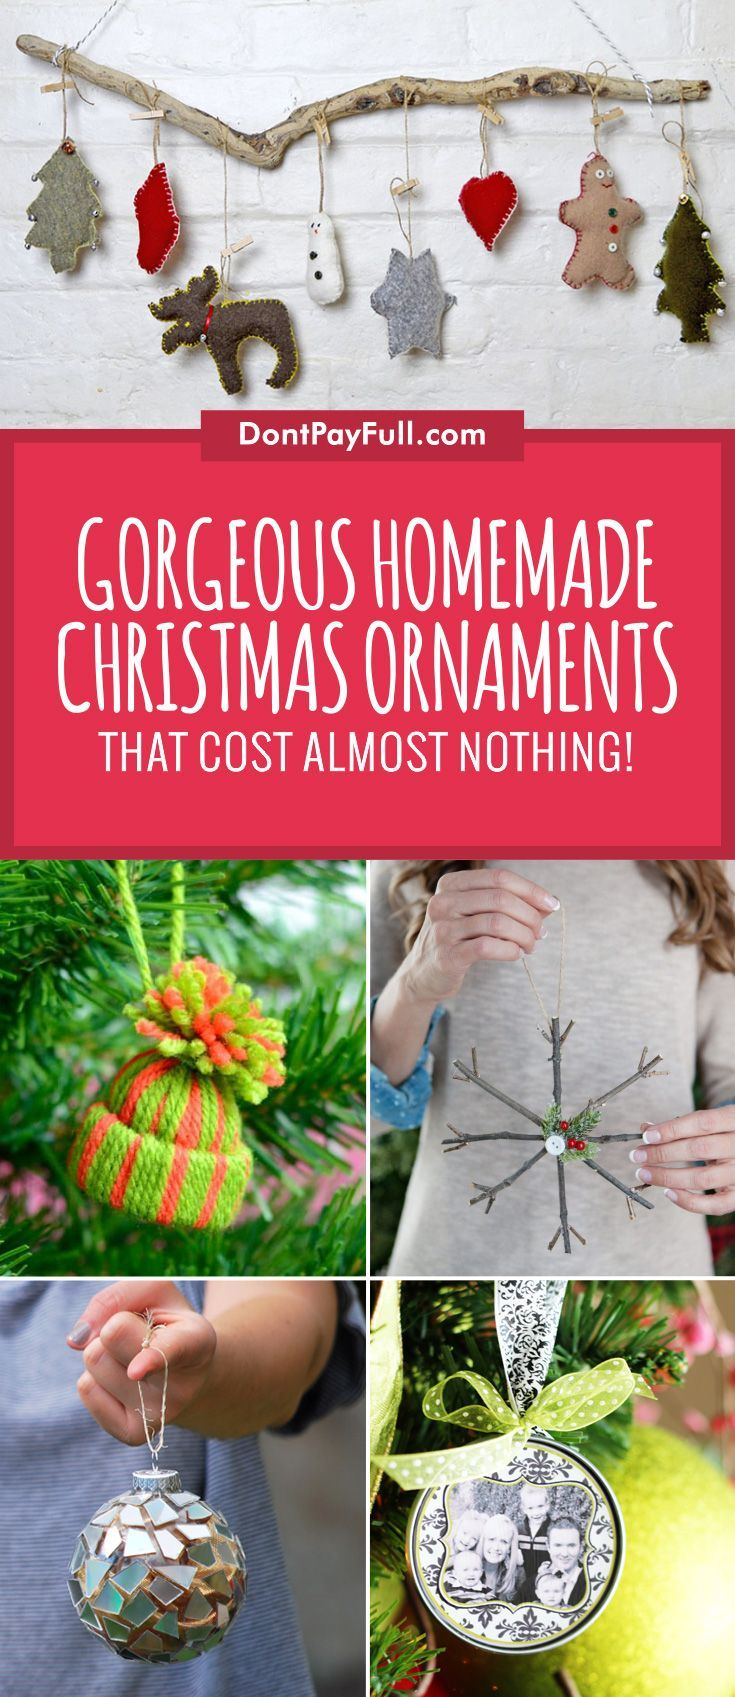 20 Absolutely Gorgeous Homemade Christmas Ornaments That Cost Almost Nothing #DontPayFull